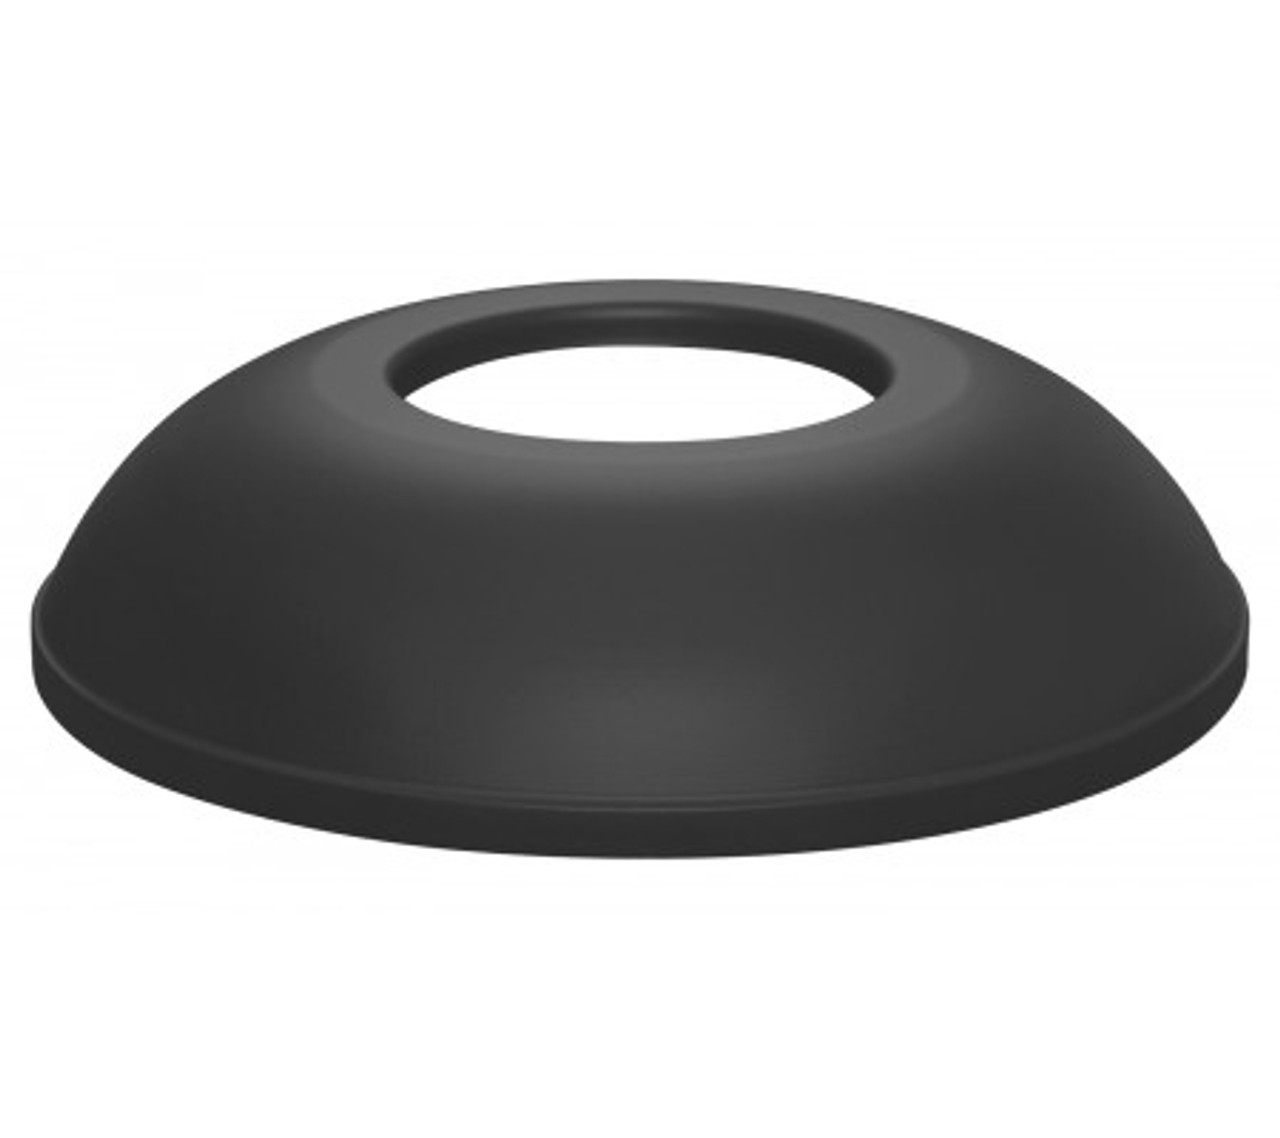 Black Textured Trash Can Lid